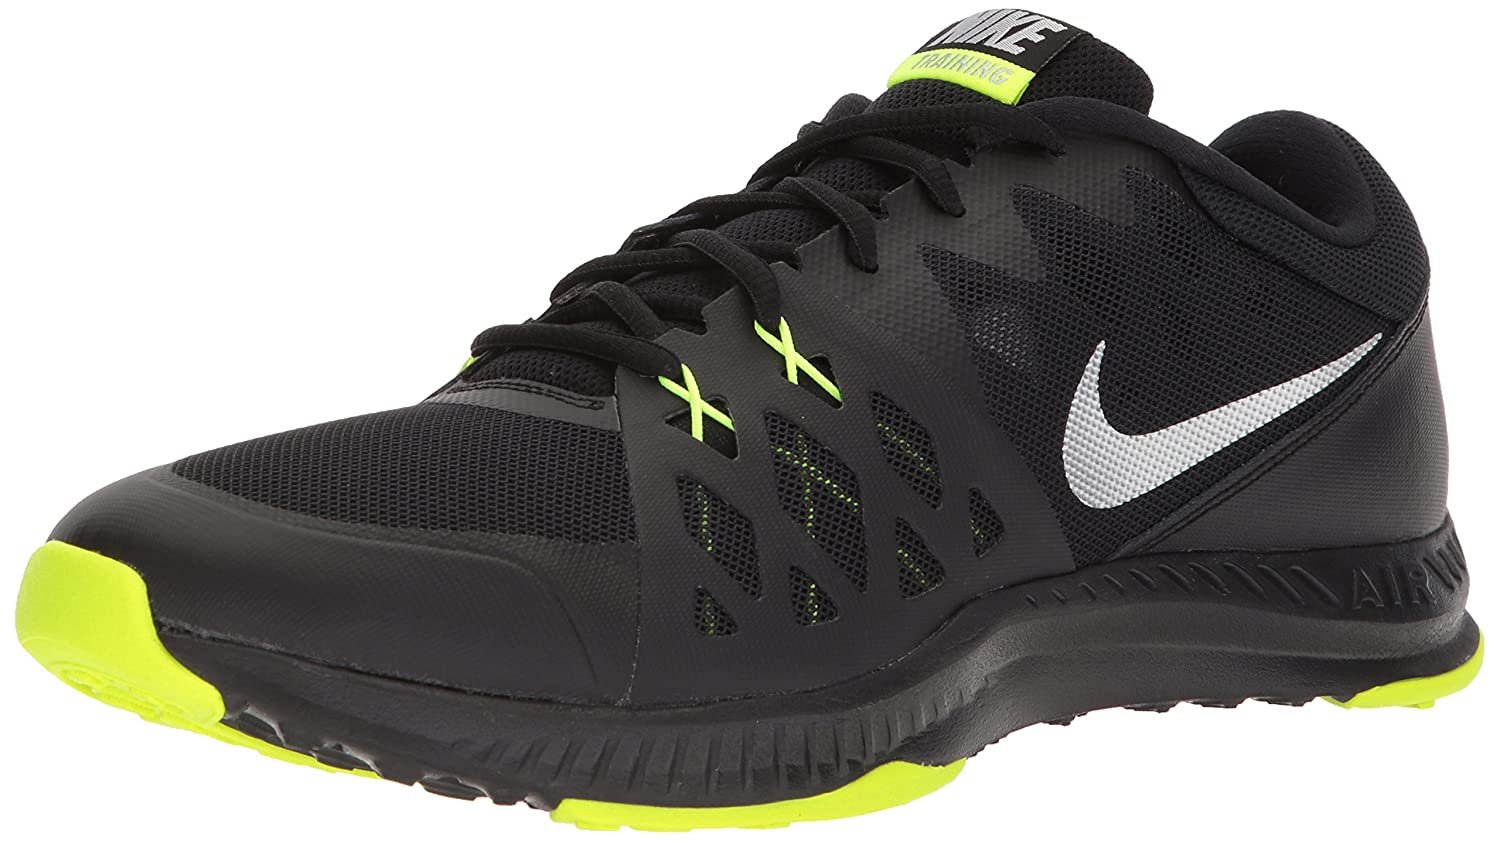 NIKE Men's Air Epic Speed TR II Cross Trainer Shoes B06Y2HXZT9 9.5 D(M) US|Black/Metallic Silver/Volt